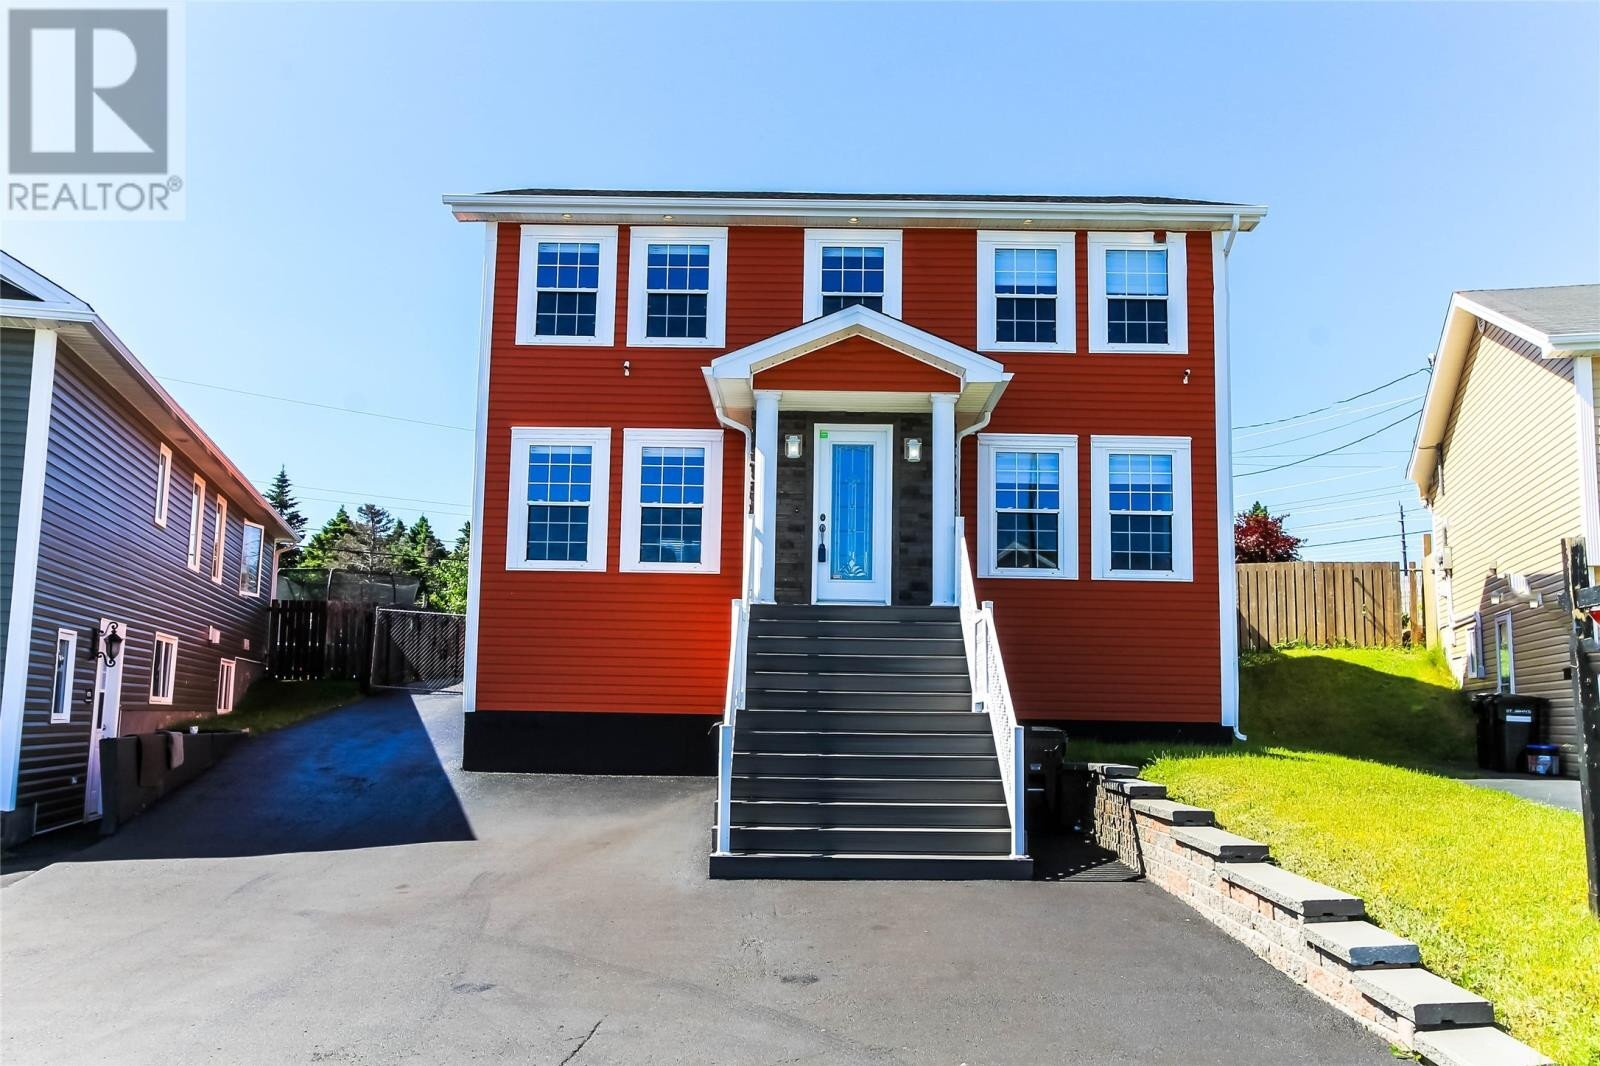 House for sale at 99 Winslow St St. John's Newfoundland - MLS: 1212080